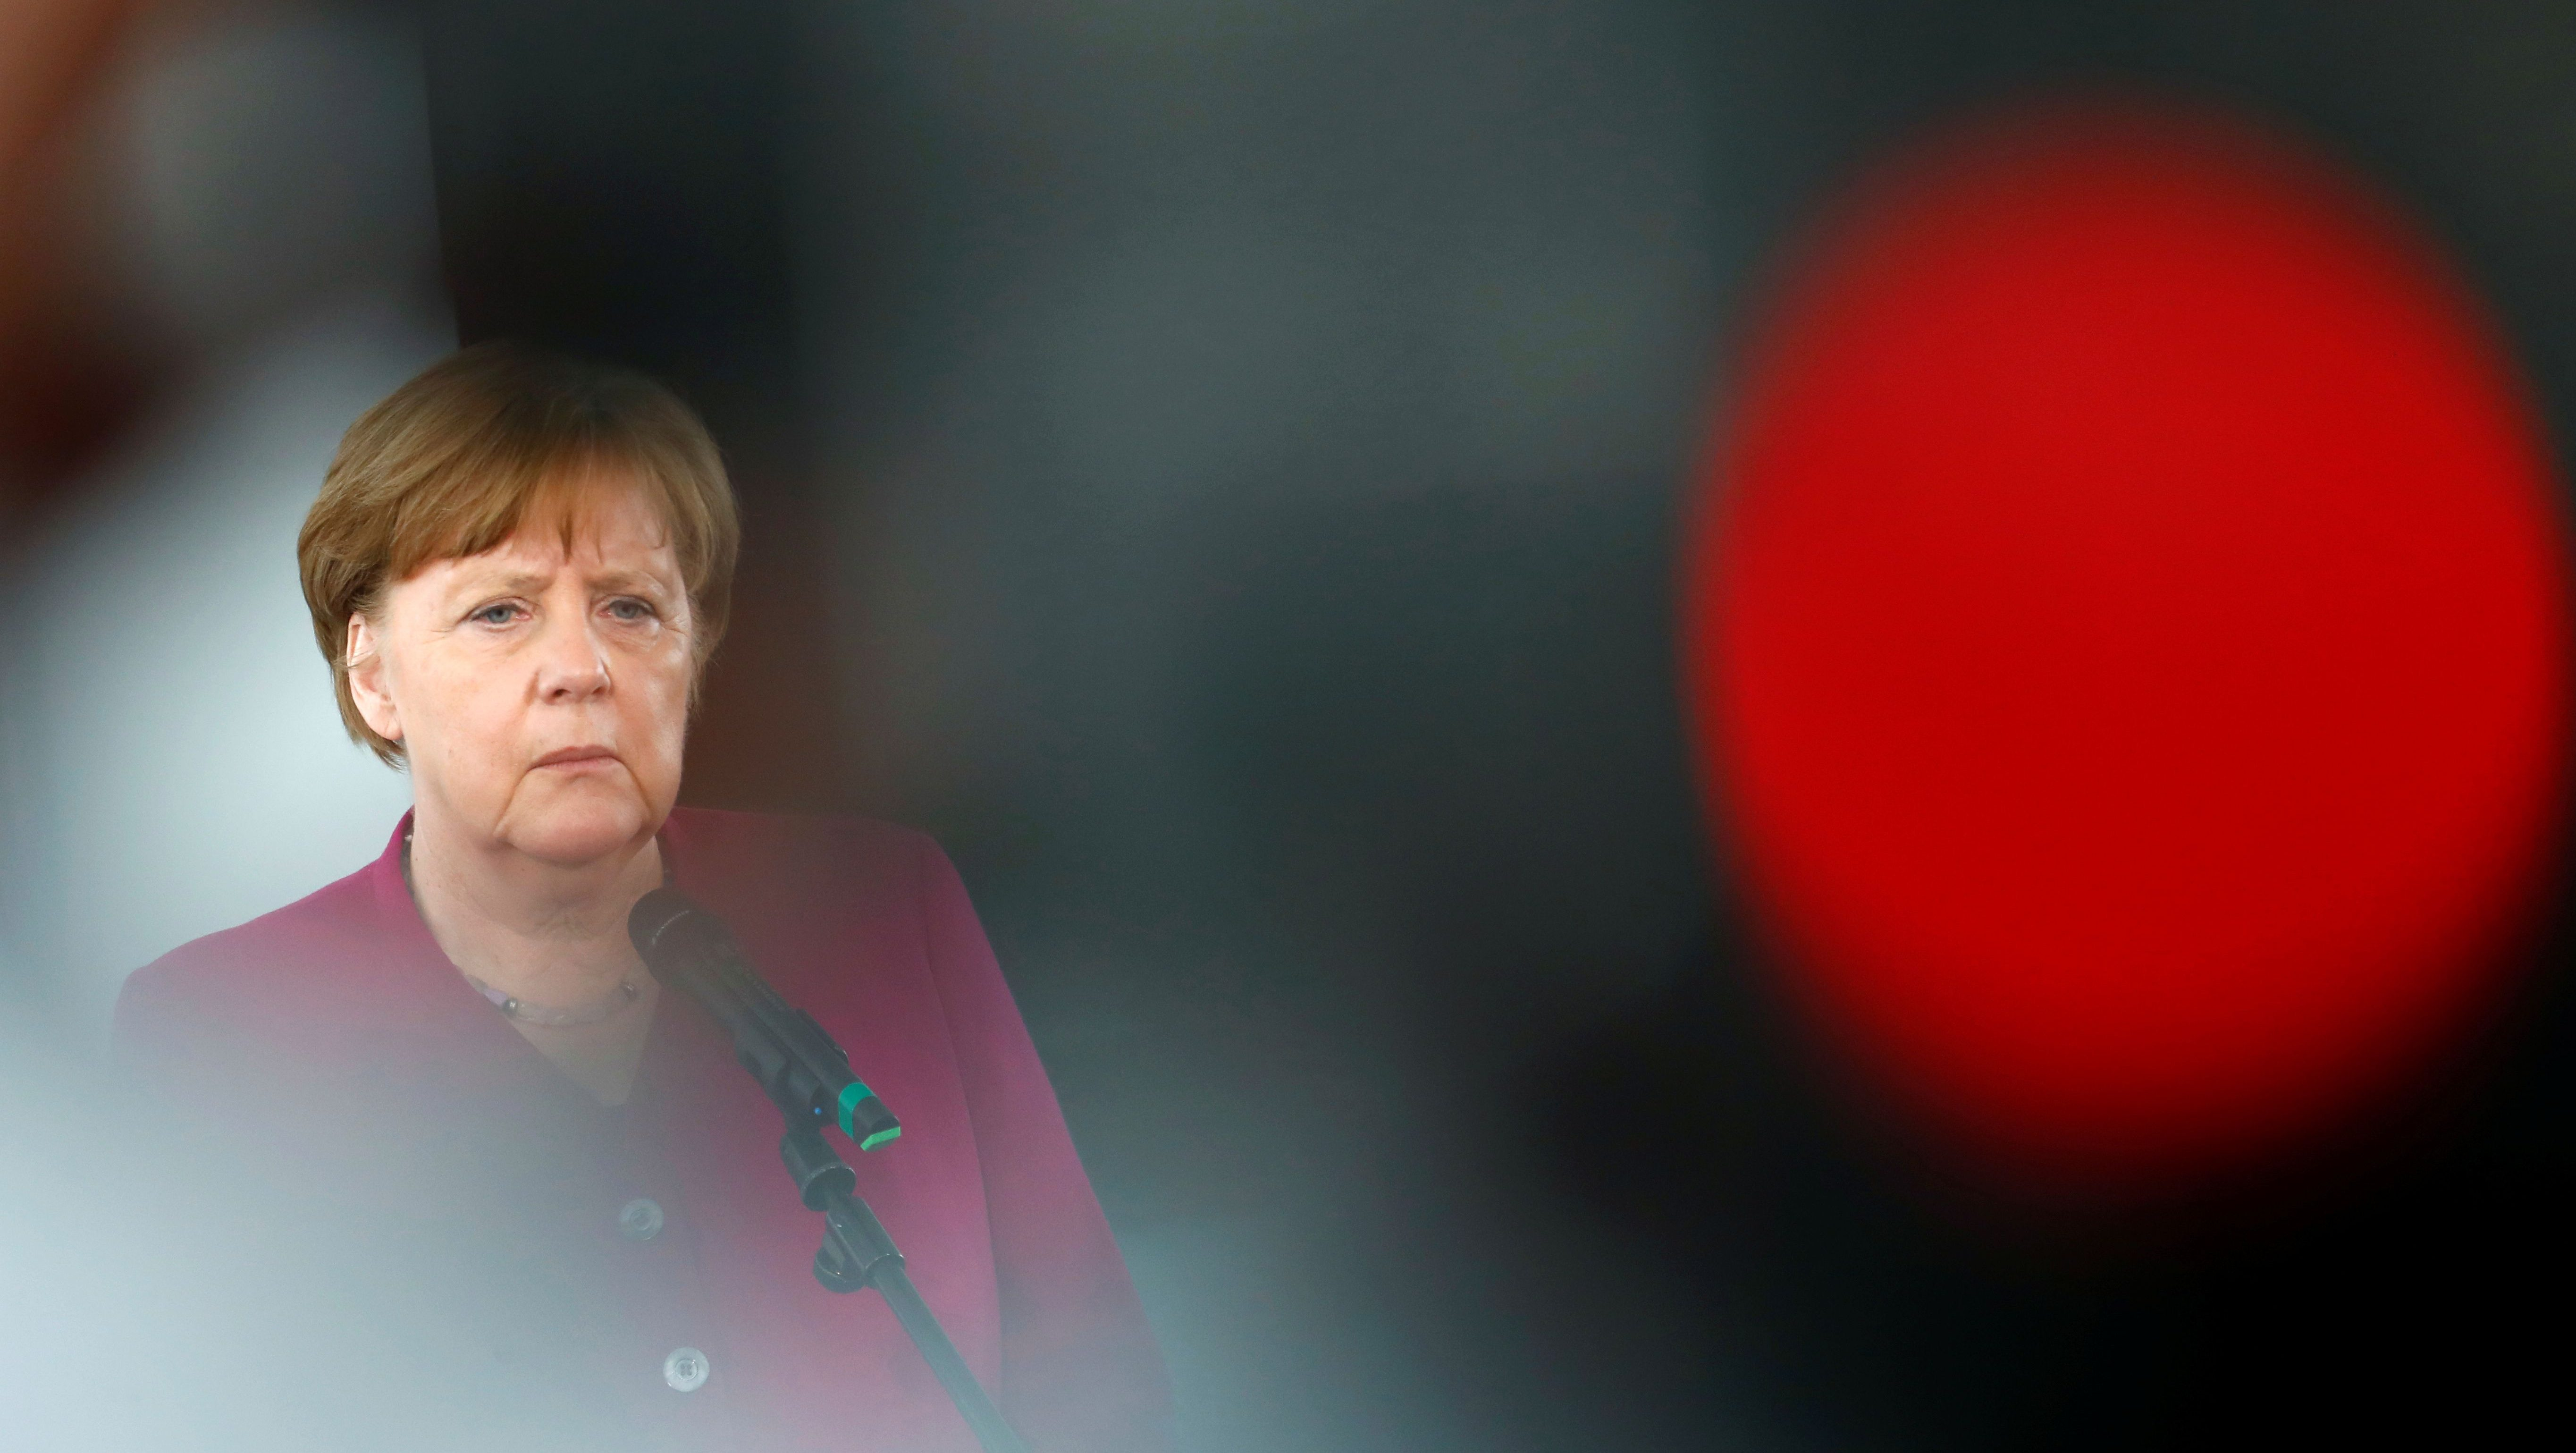 German Chancellor Angela Merkel had to scale back her refugee policy